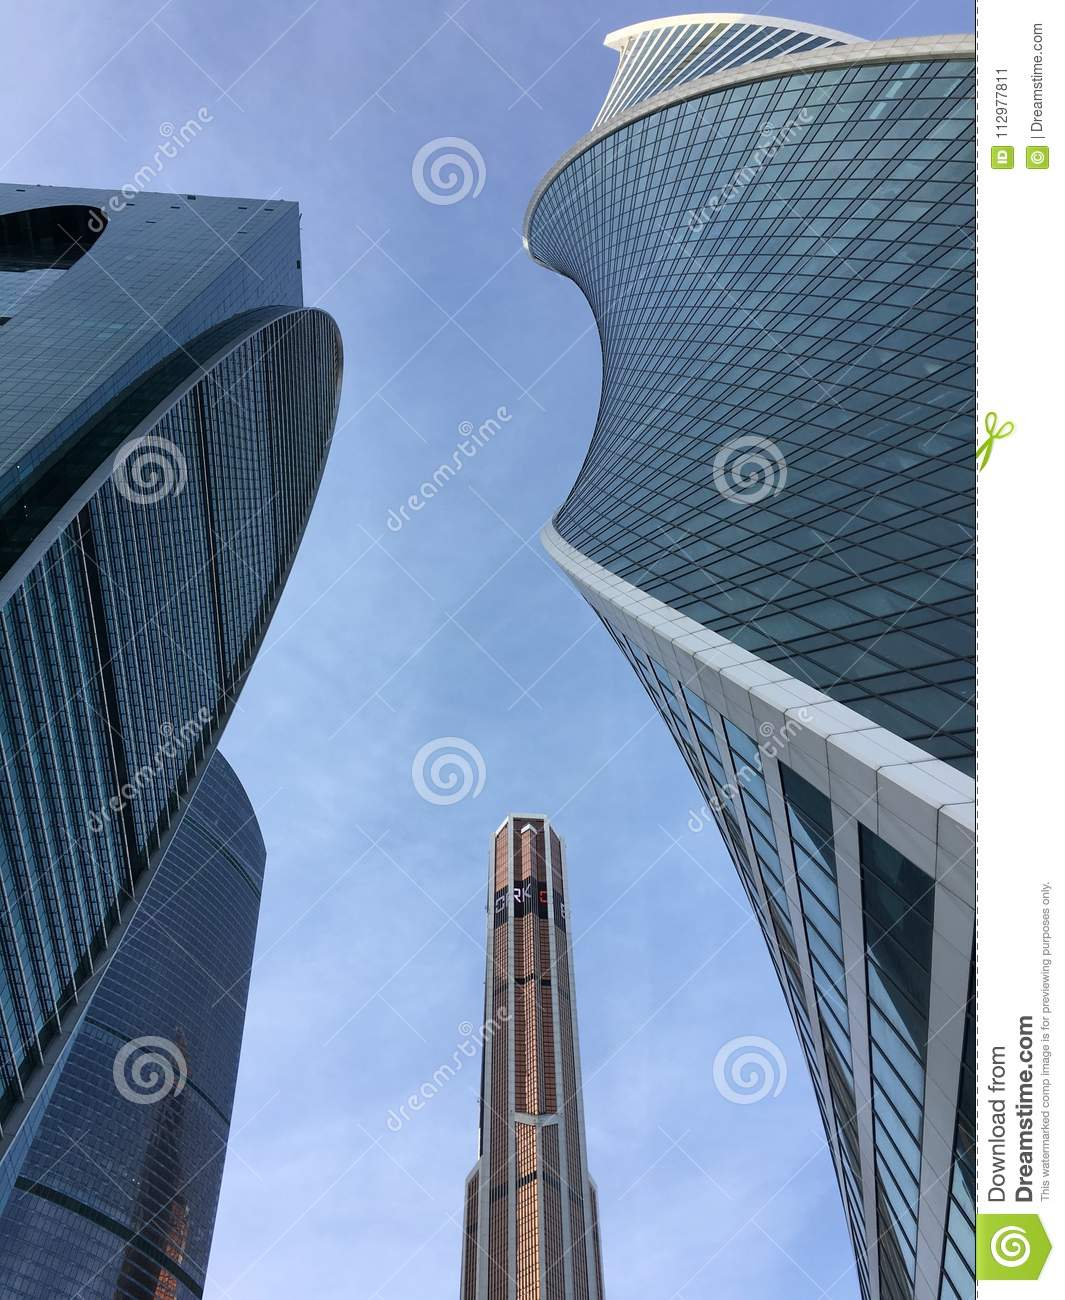 Modern skyscrapers in the capital of the city